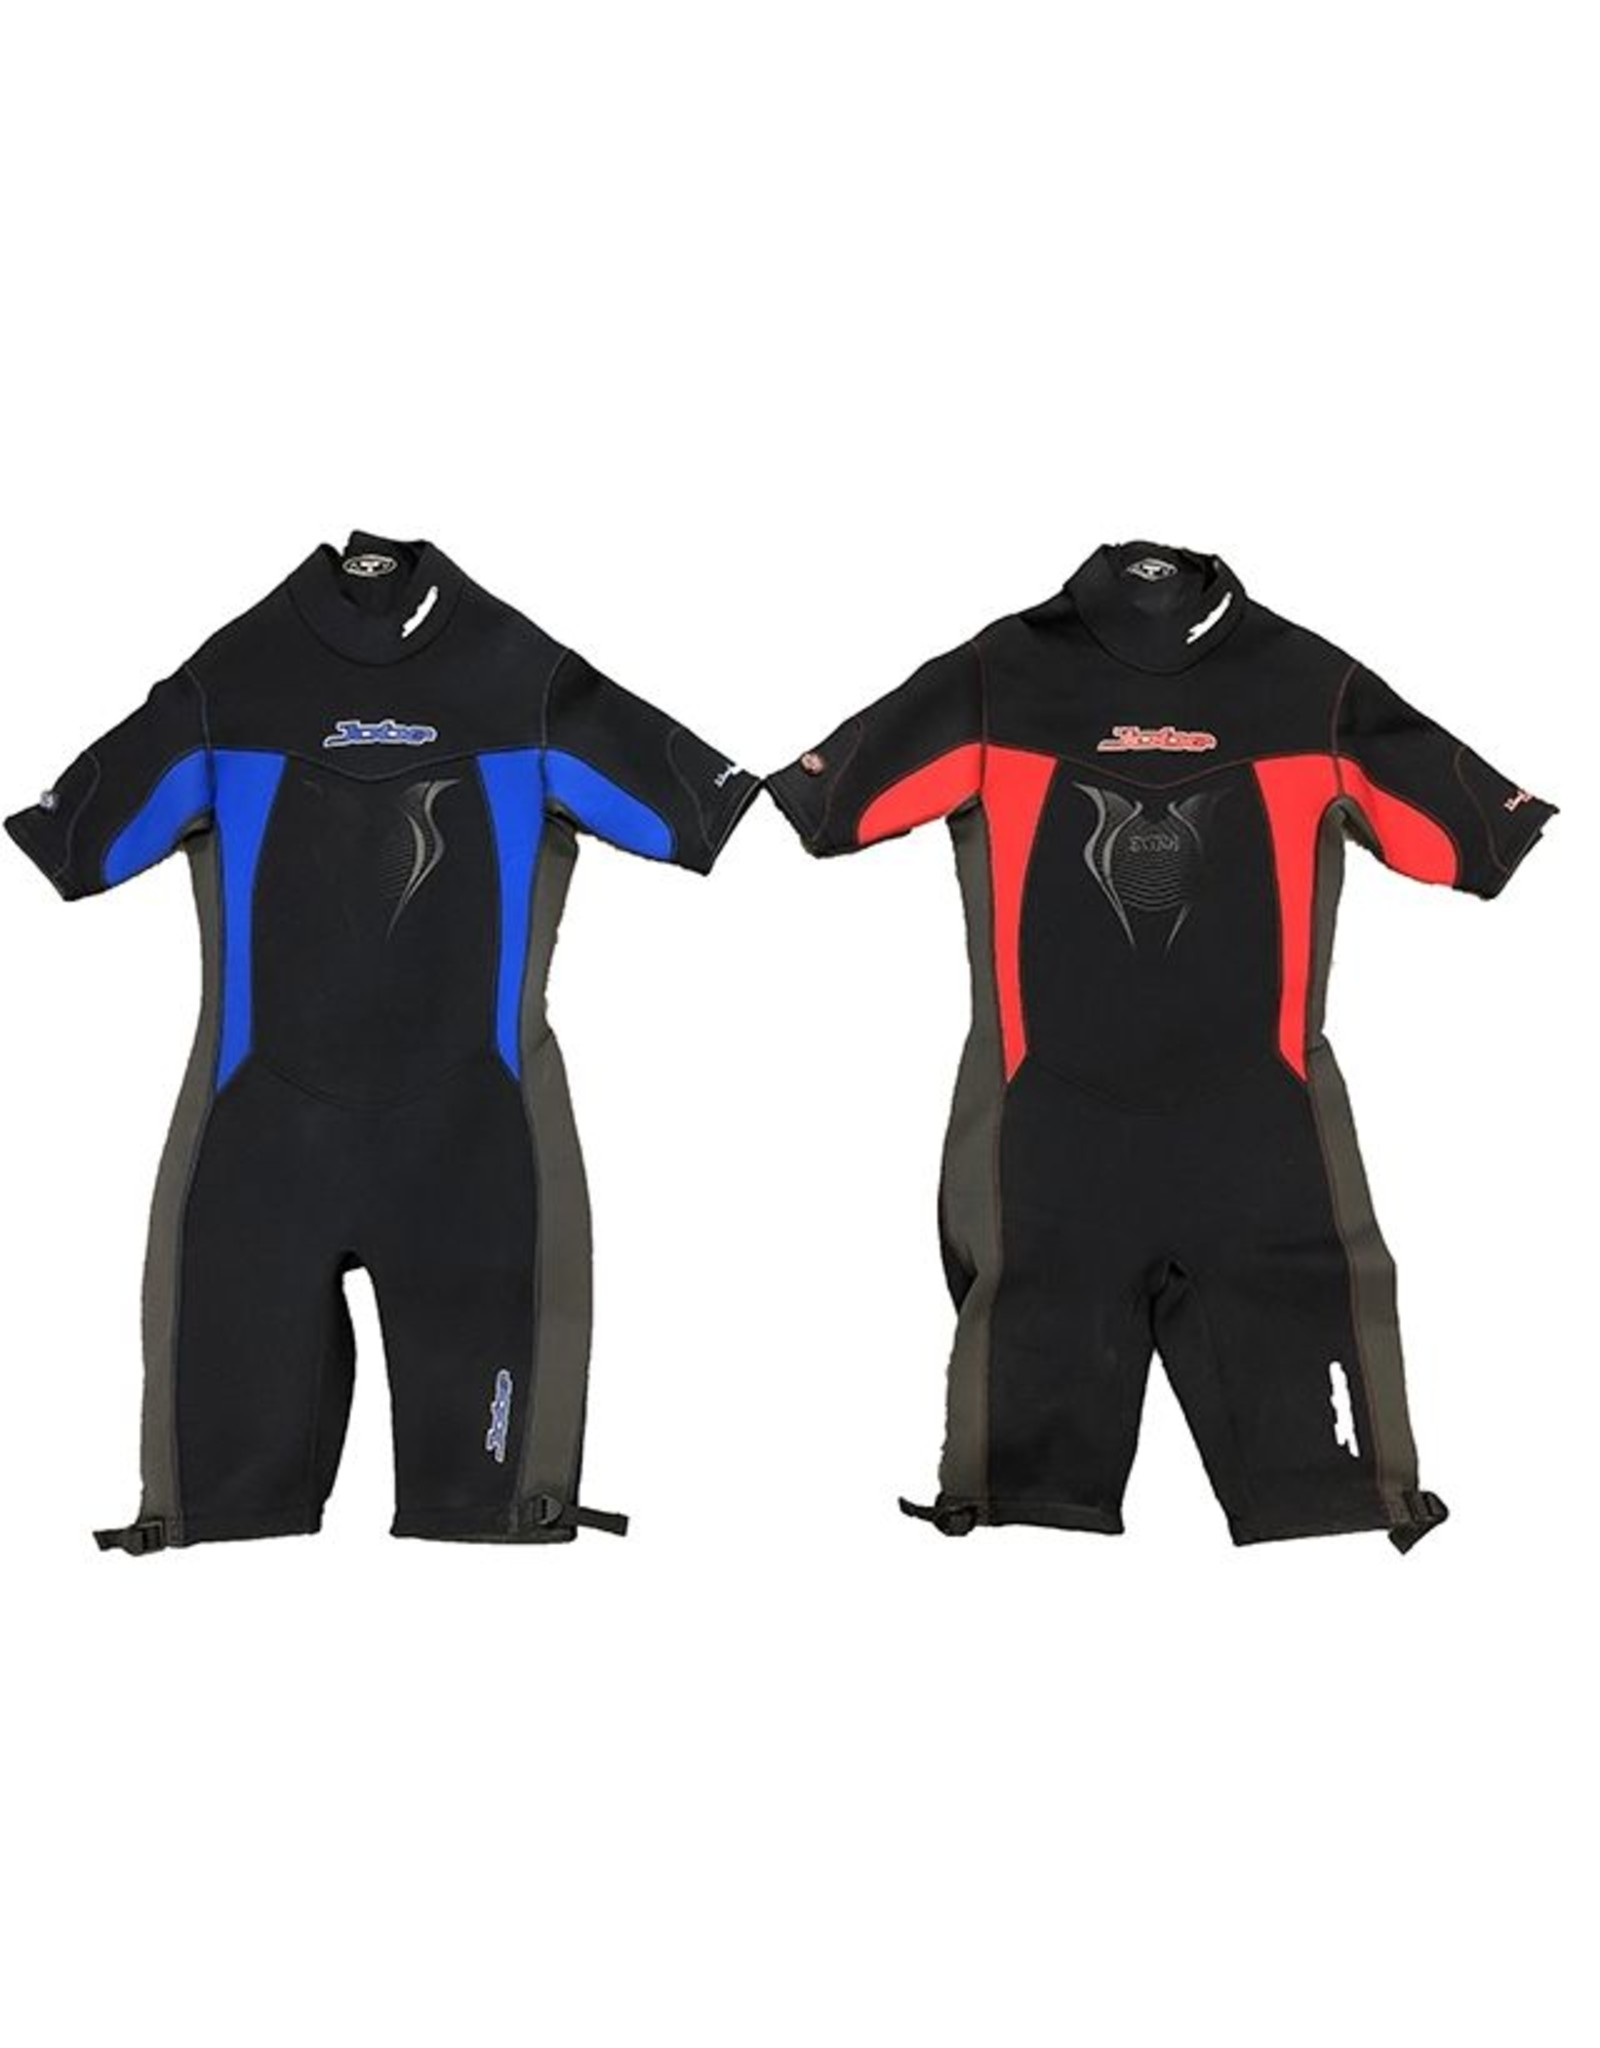 Hebor Watersport Jobe Shorty Extra wetsuit